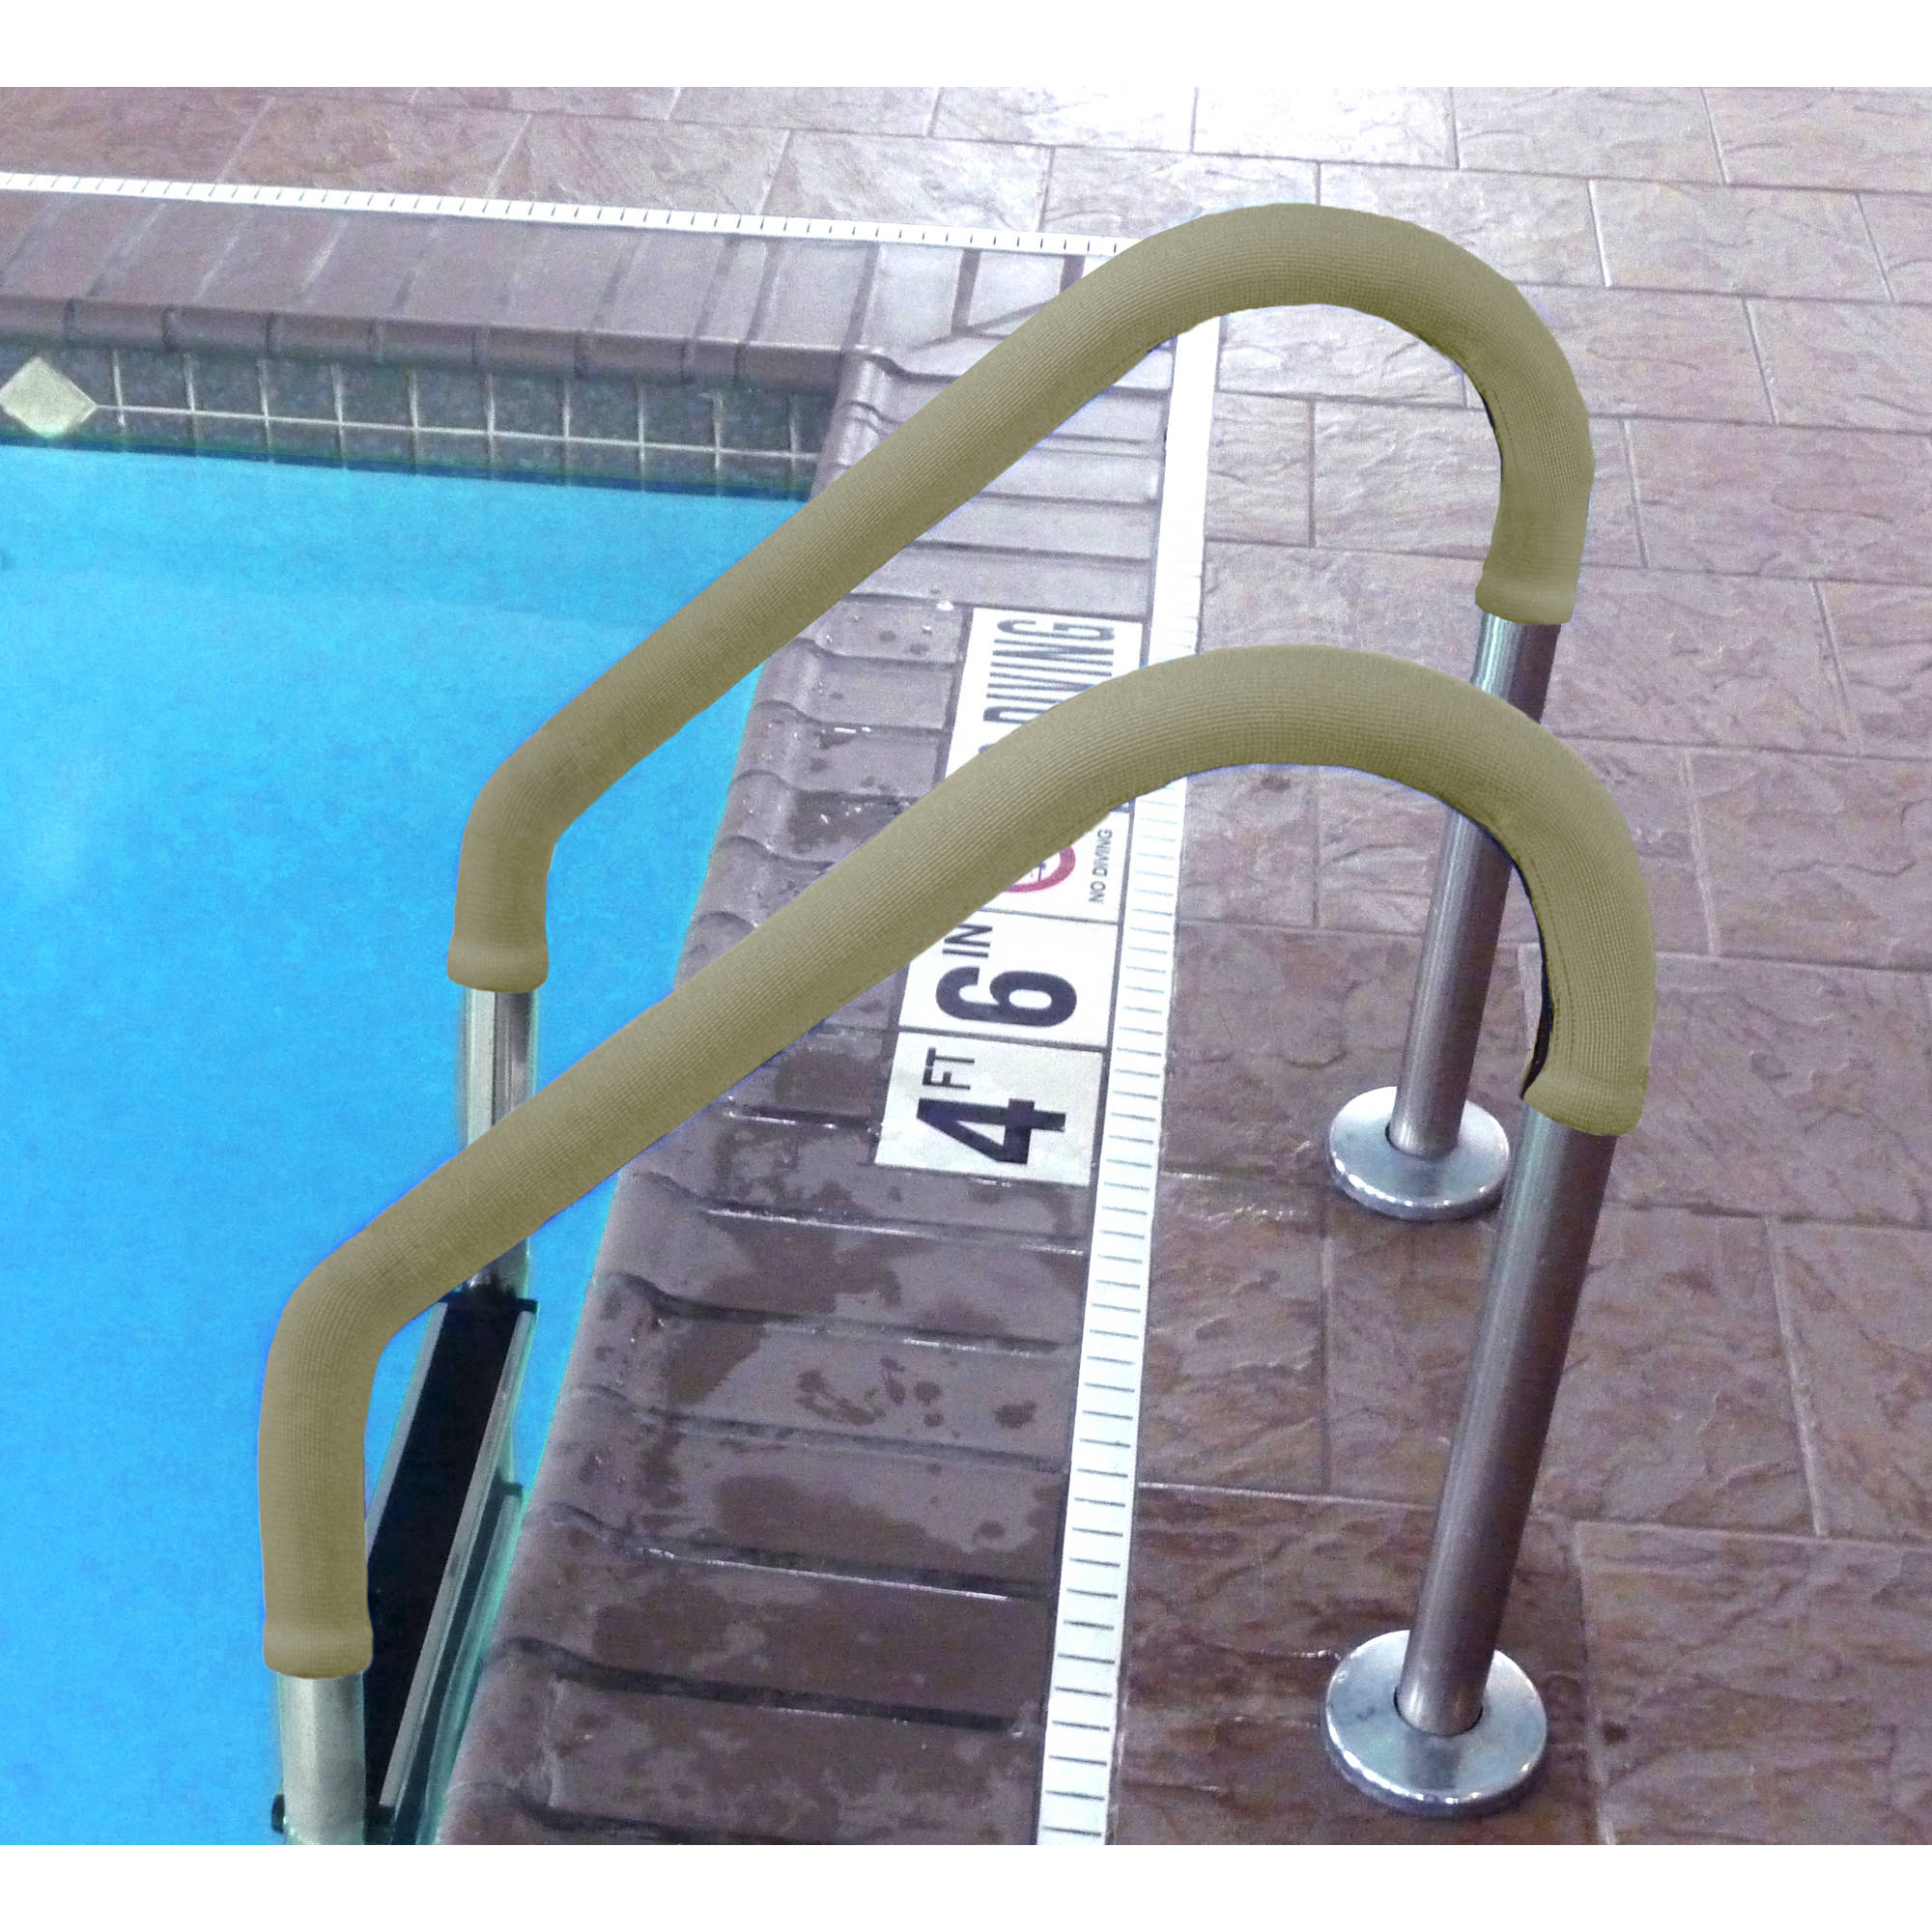 8' Grip for Pool Handrails, Tan